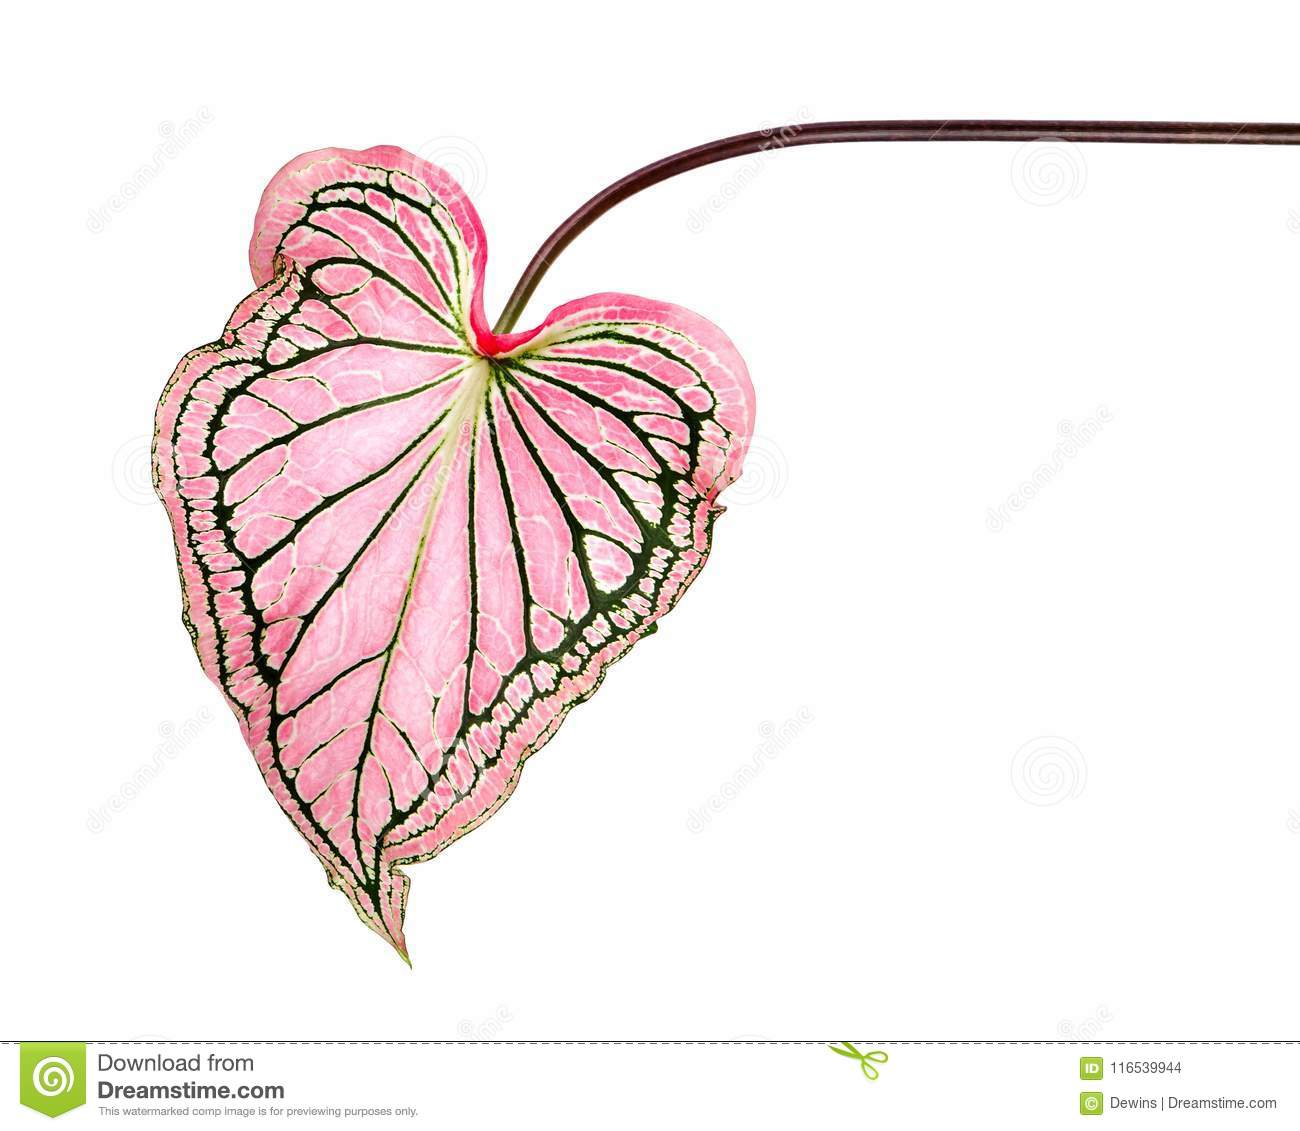 Caladium bicolor with pink leaf and green veins Florida Sweetheart, Pink Caladium foliage isolated on white background